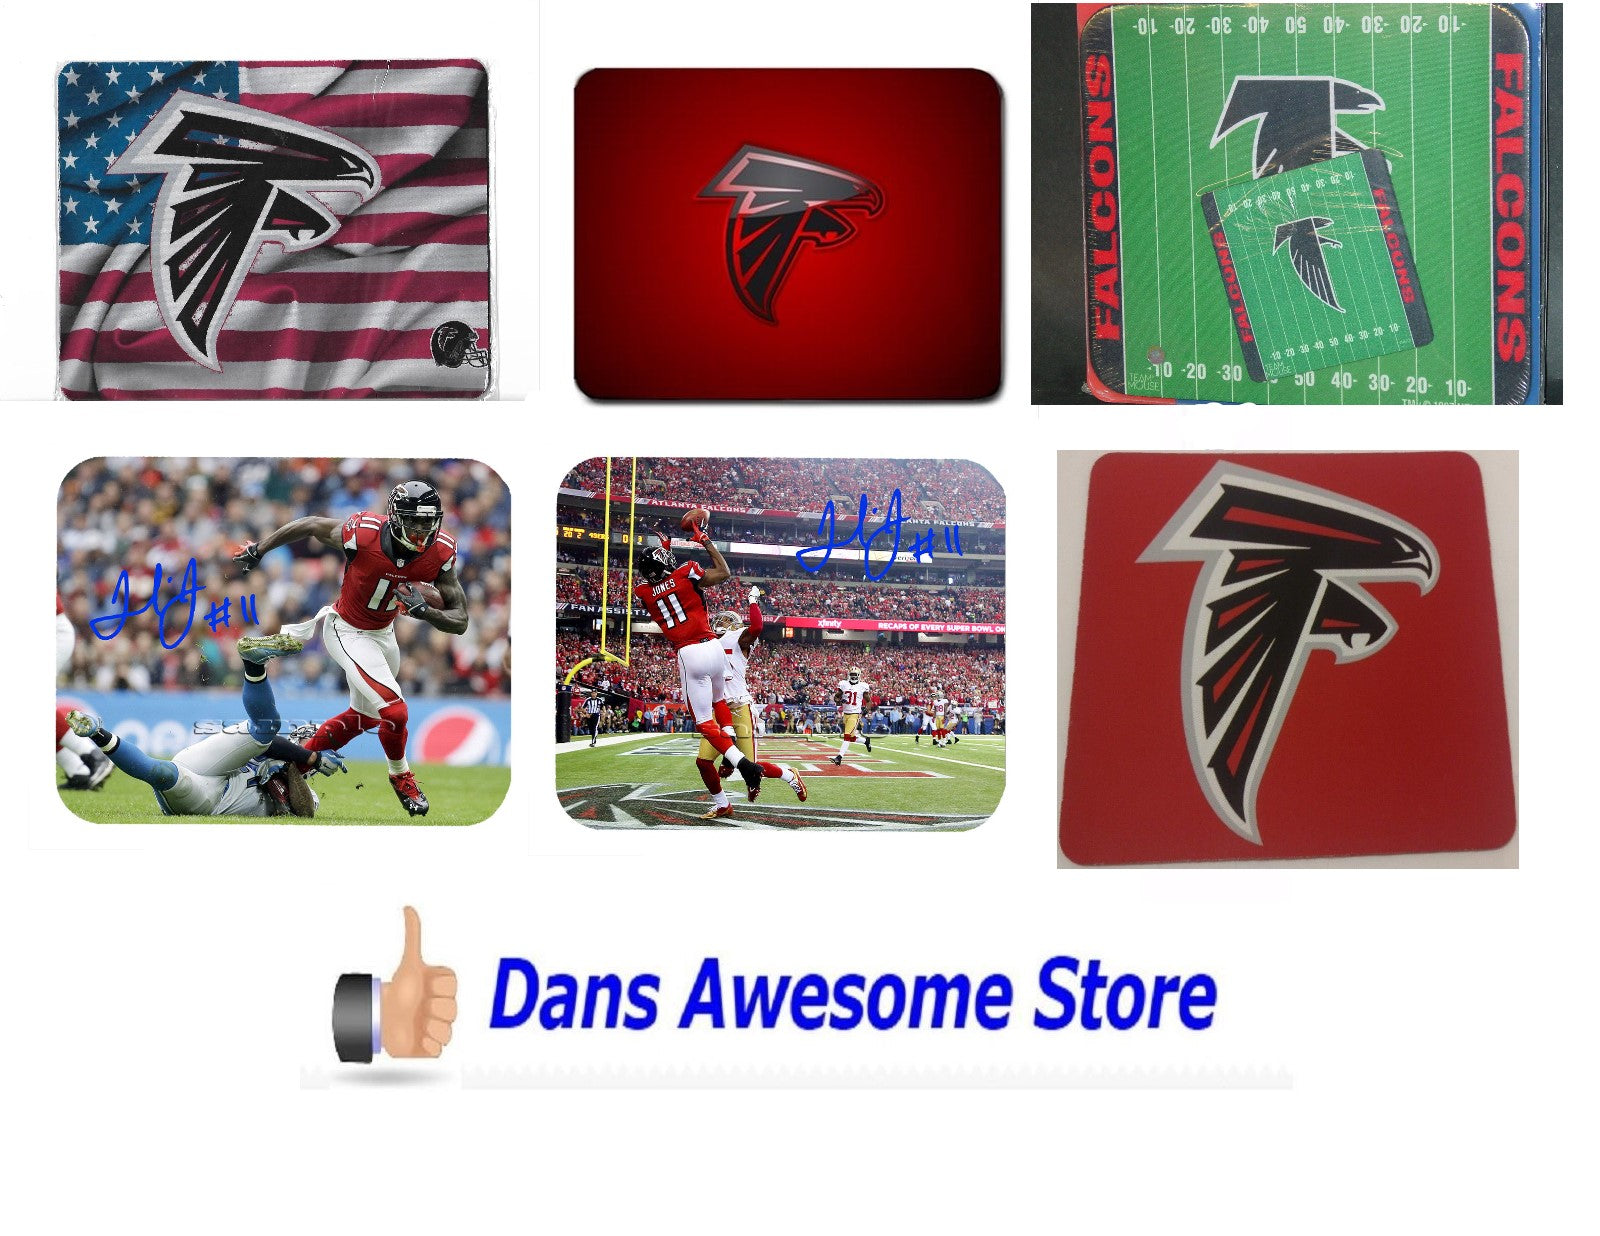 Atlanta Falcons Mouse Pad - Dans Awesome Store